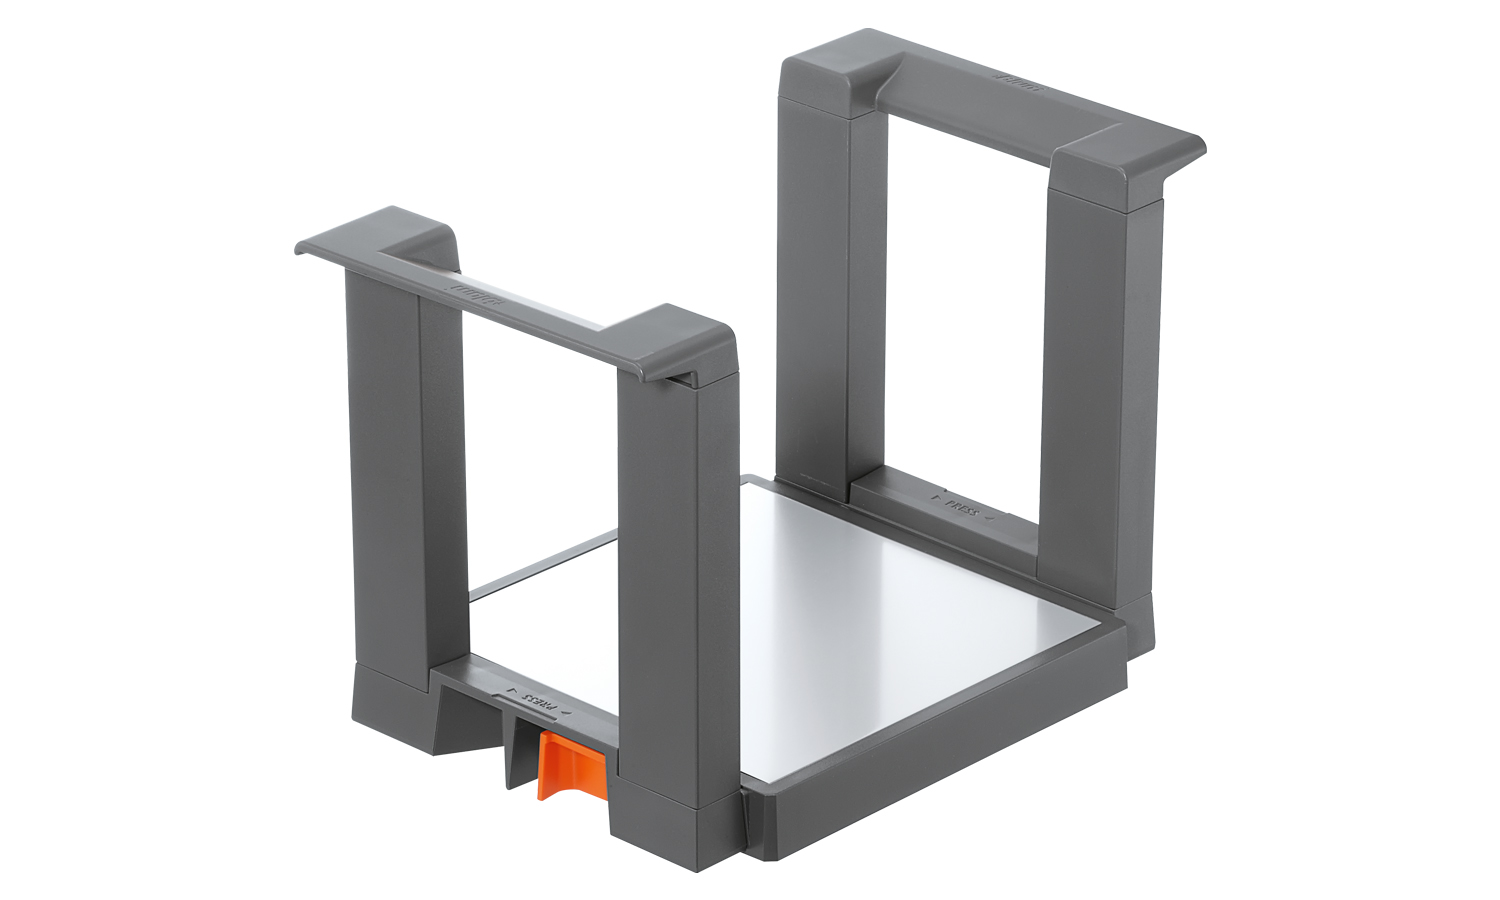 Blum Orga-Line and Ambia-Line Plate Holder